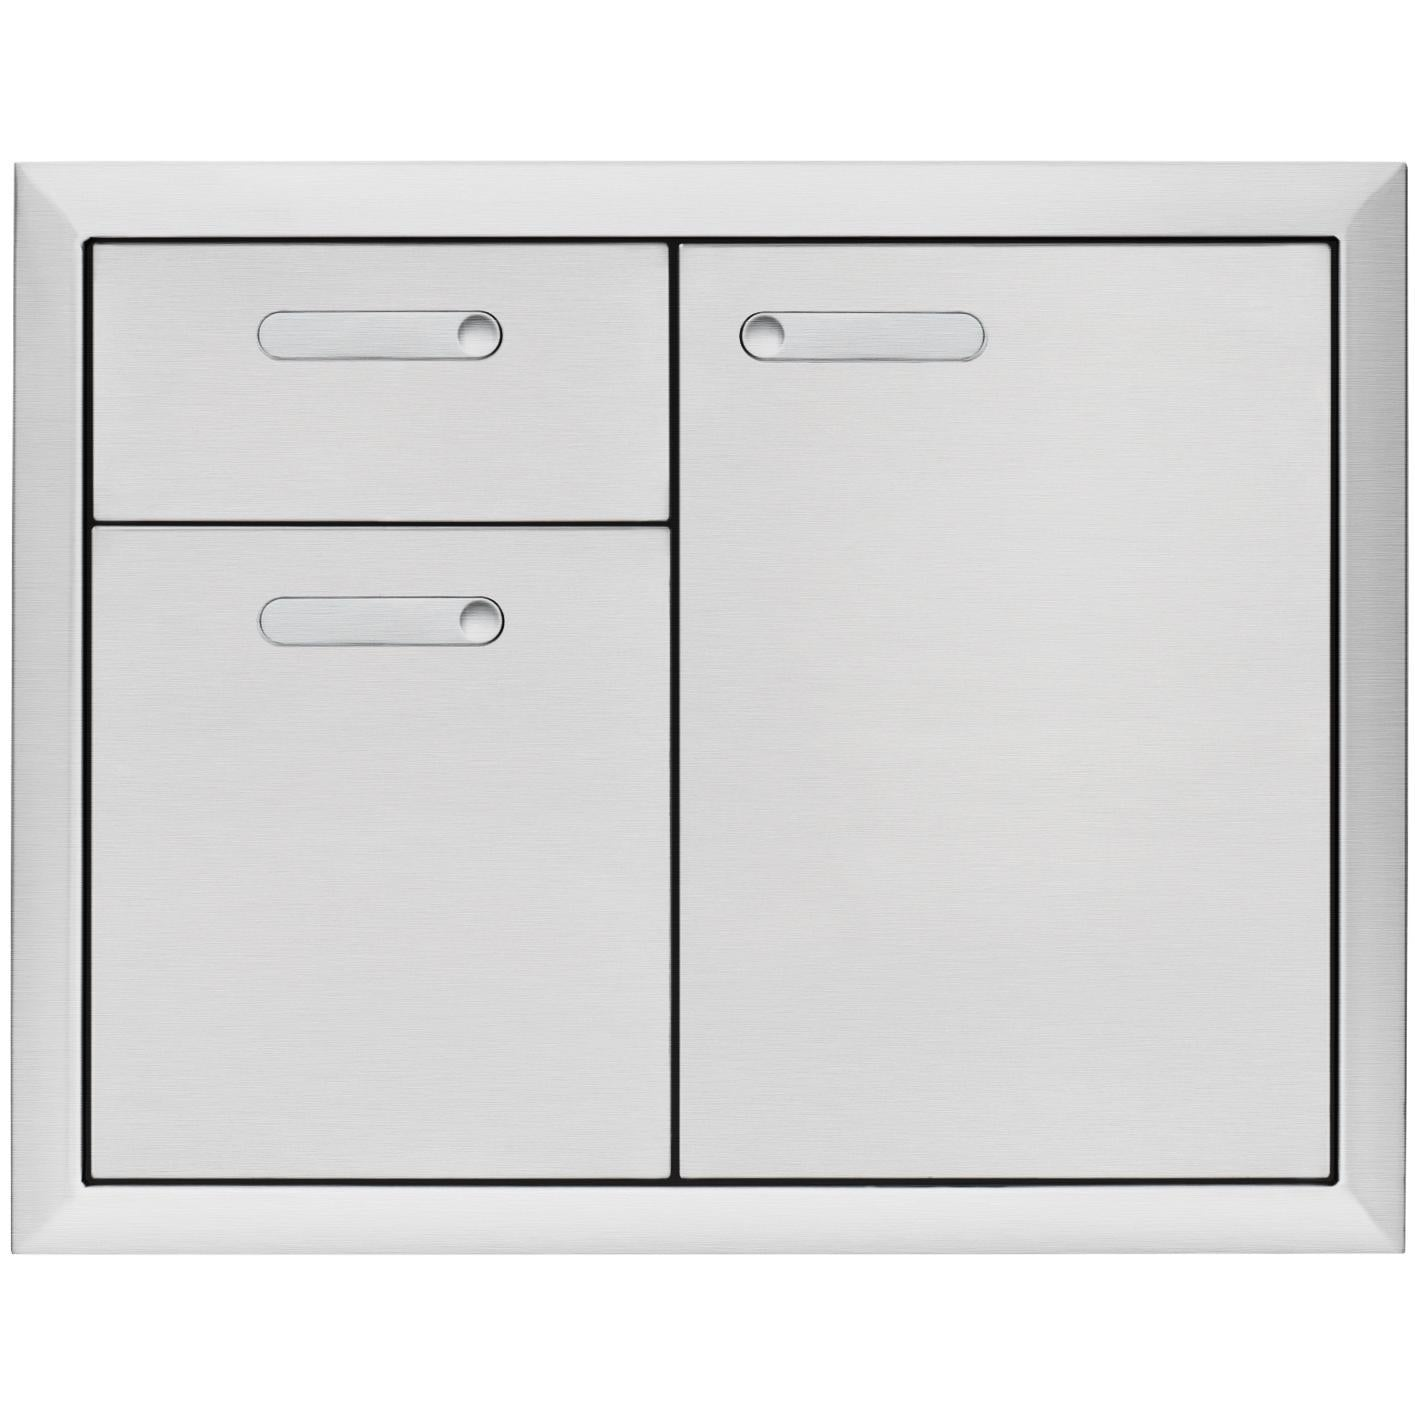 "Lynx 36"" Storage Door and Double Drawer Combination"